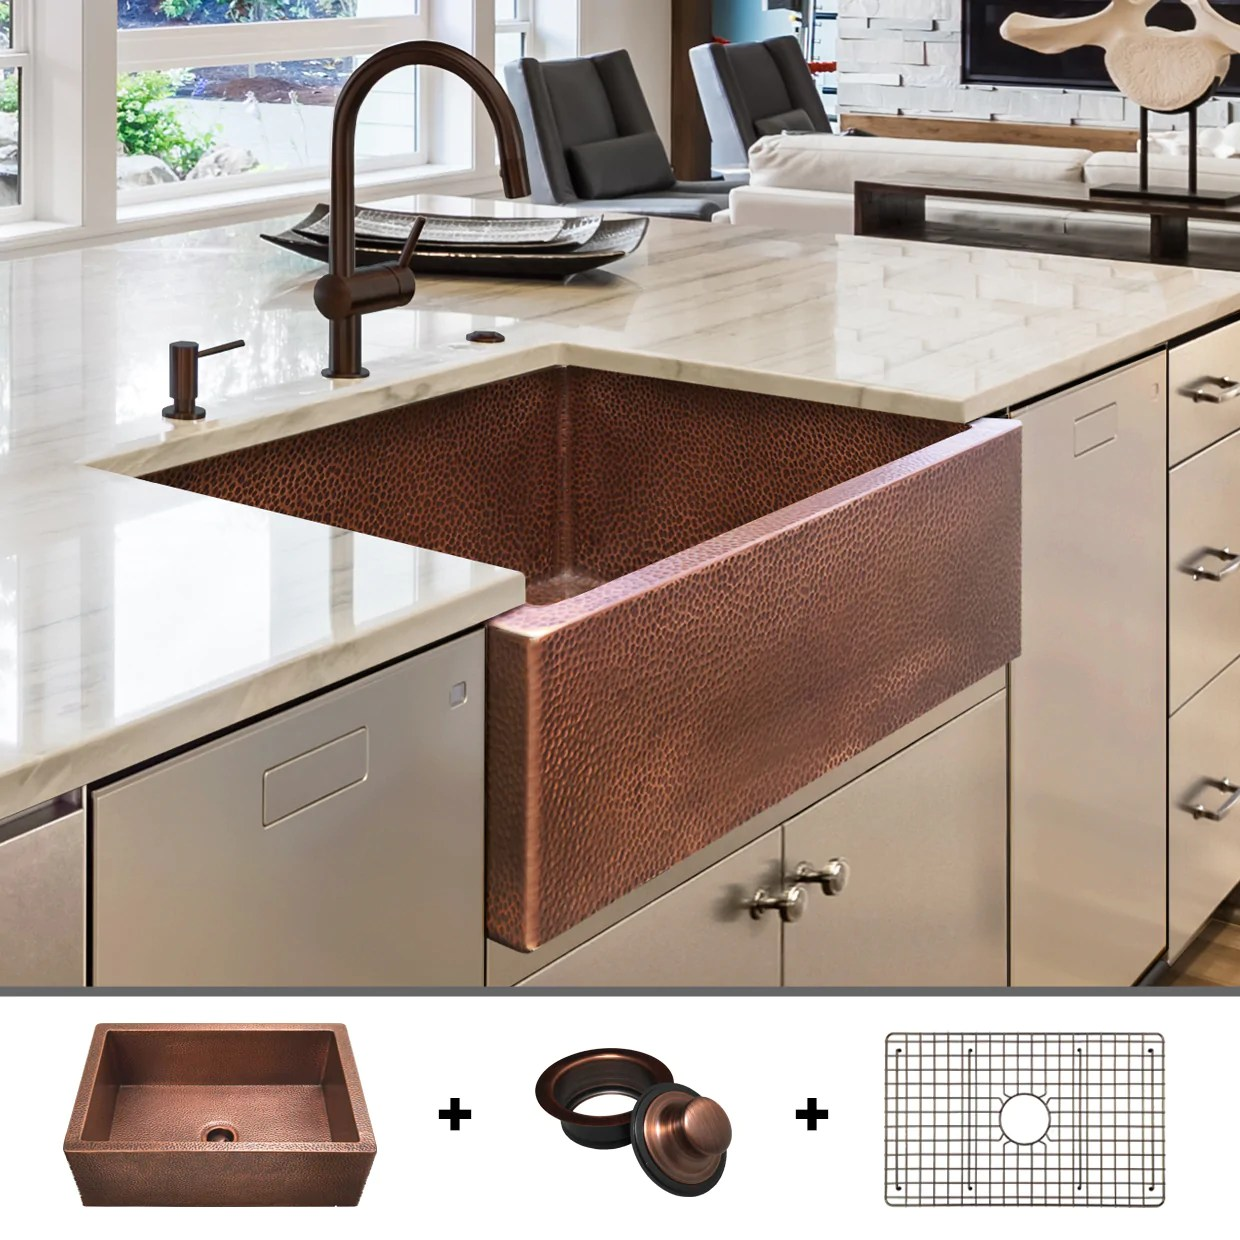 luxury fireclay and copper farmhouse sinks